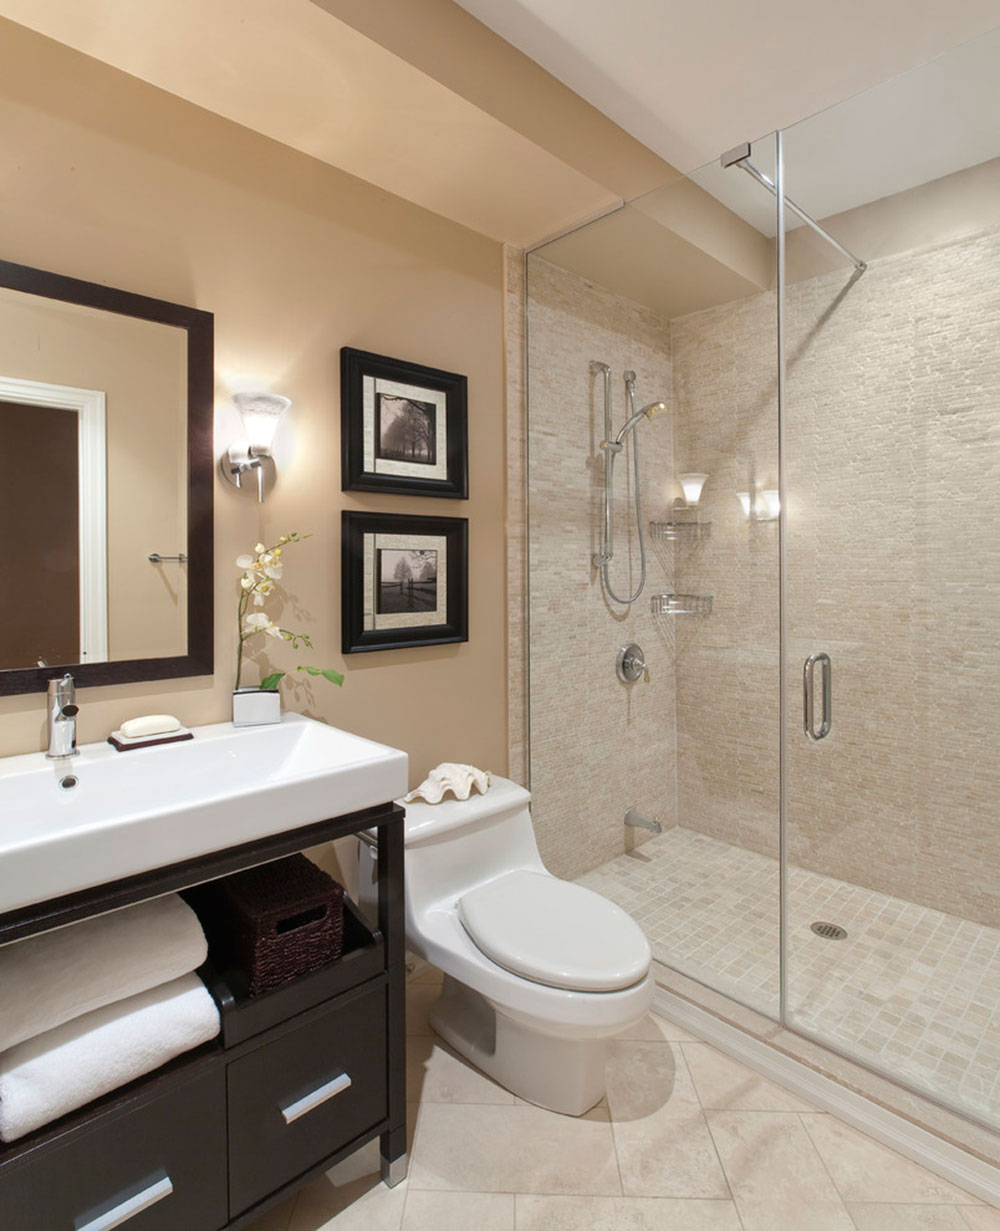 The stylish bathroom should be a priority8 The stylish bathroom should be a priority